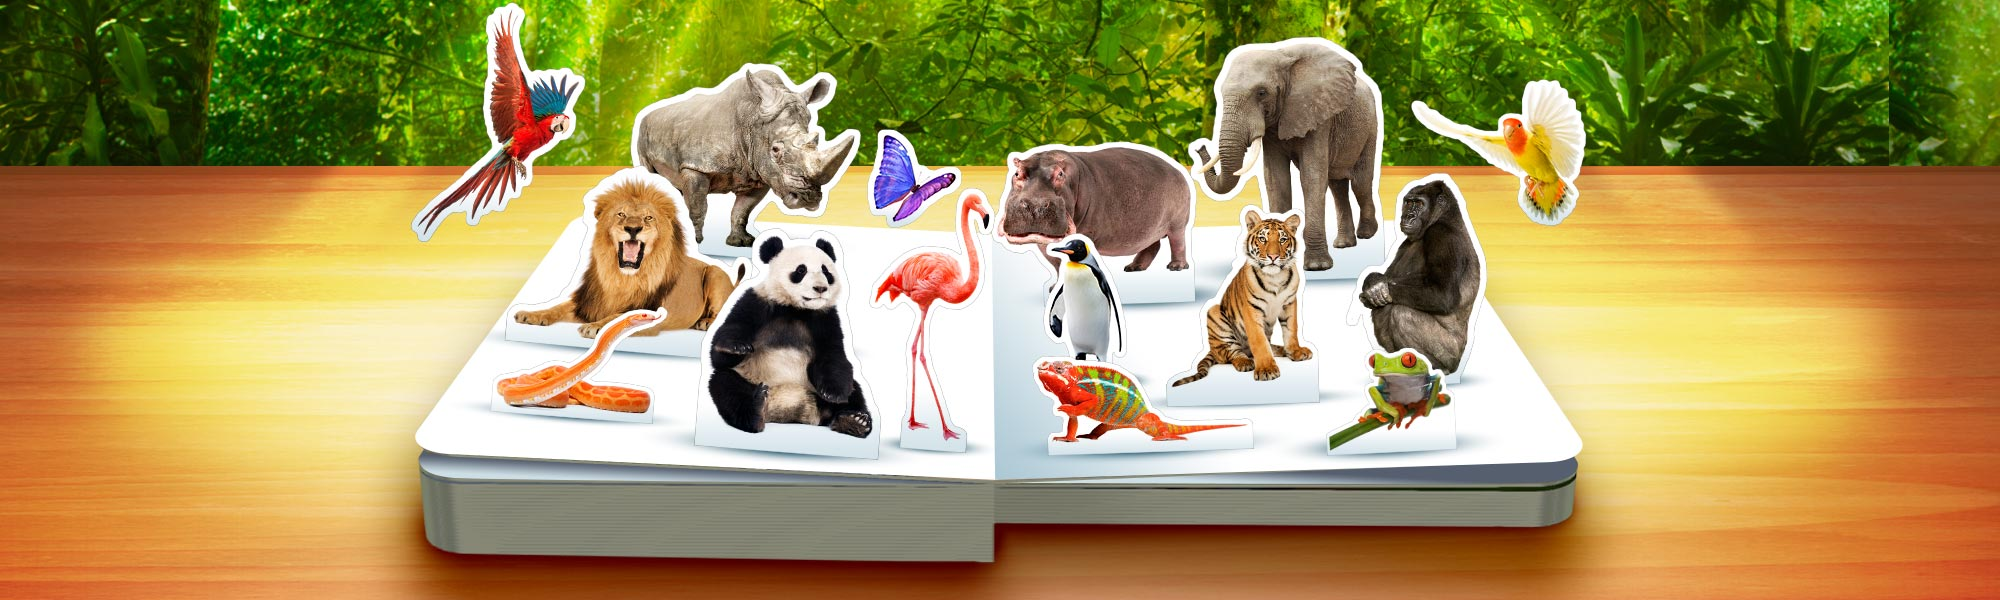 Zoo Animals App - StoryToys Apps